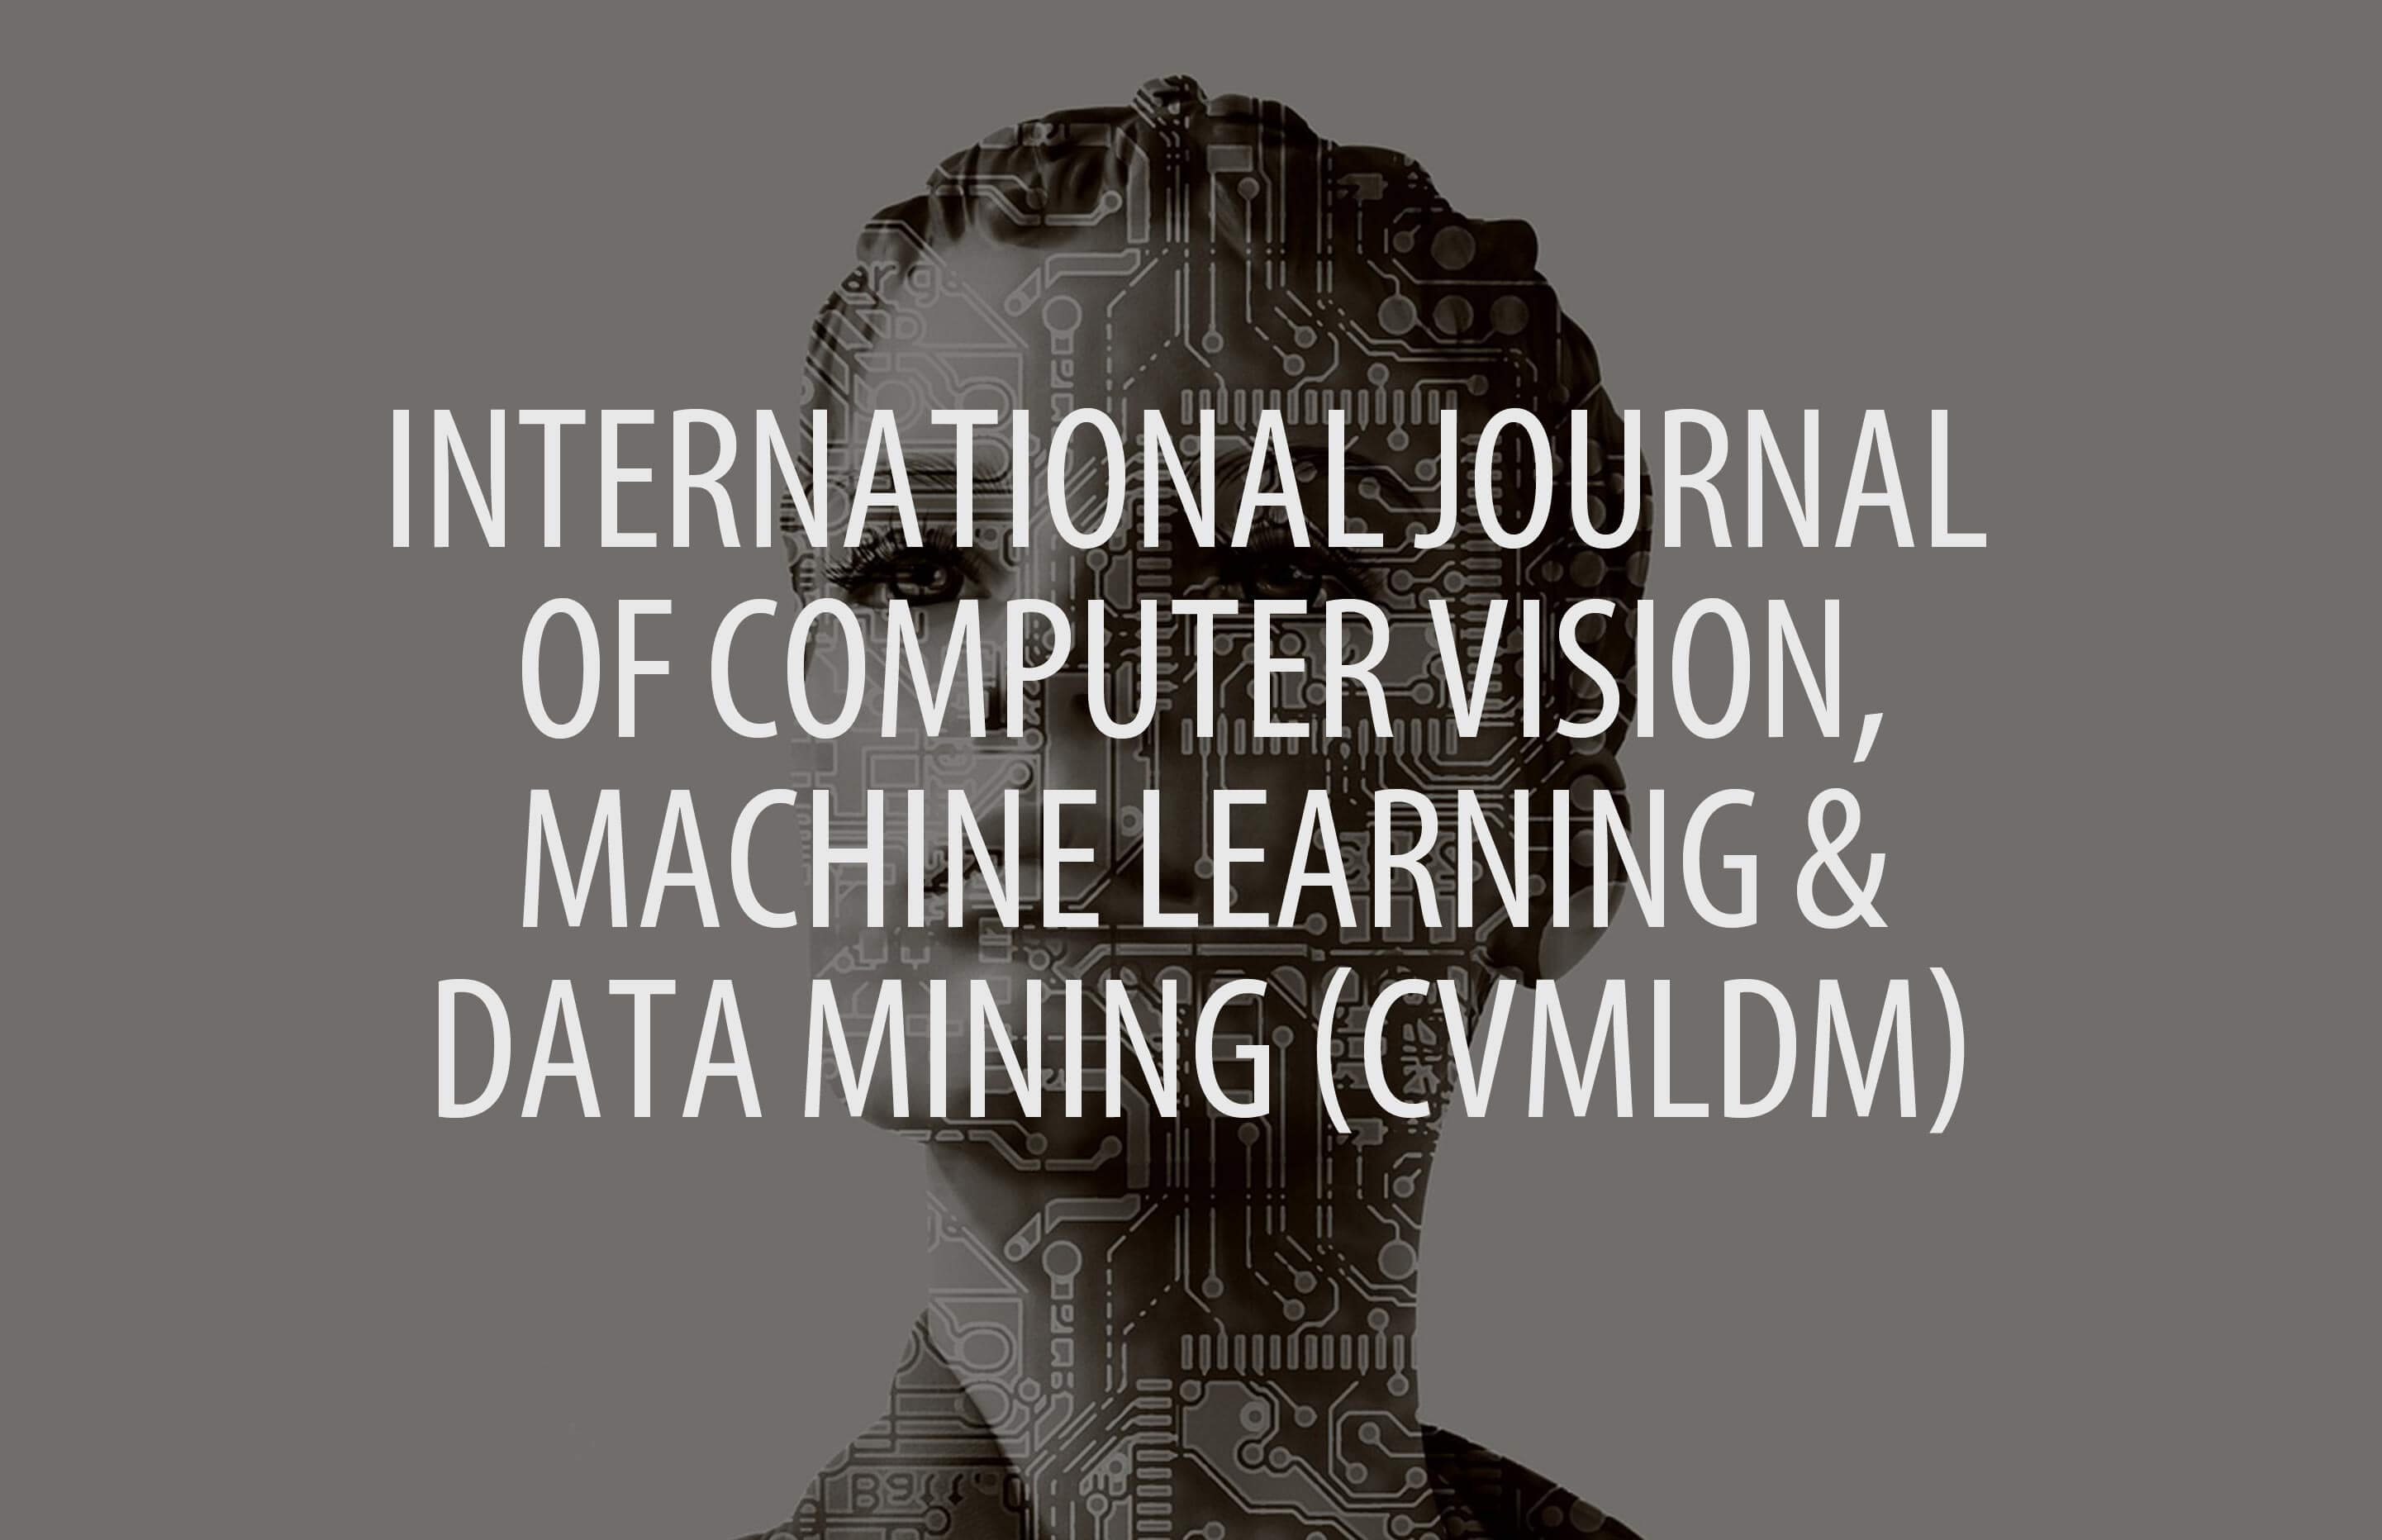 International Journal of Computer Vision, Machine Learning and Data Mining (CVMLDM)